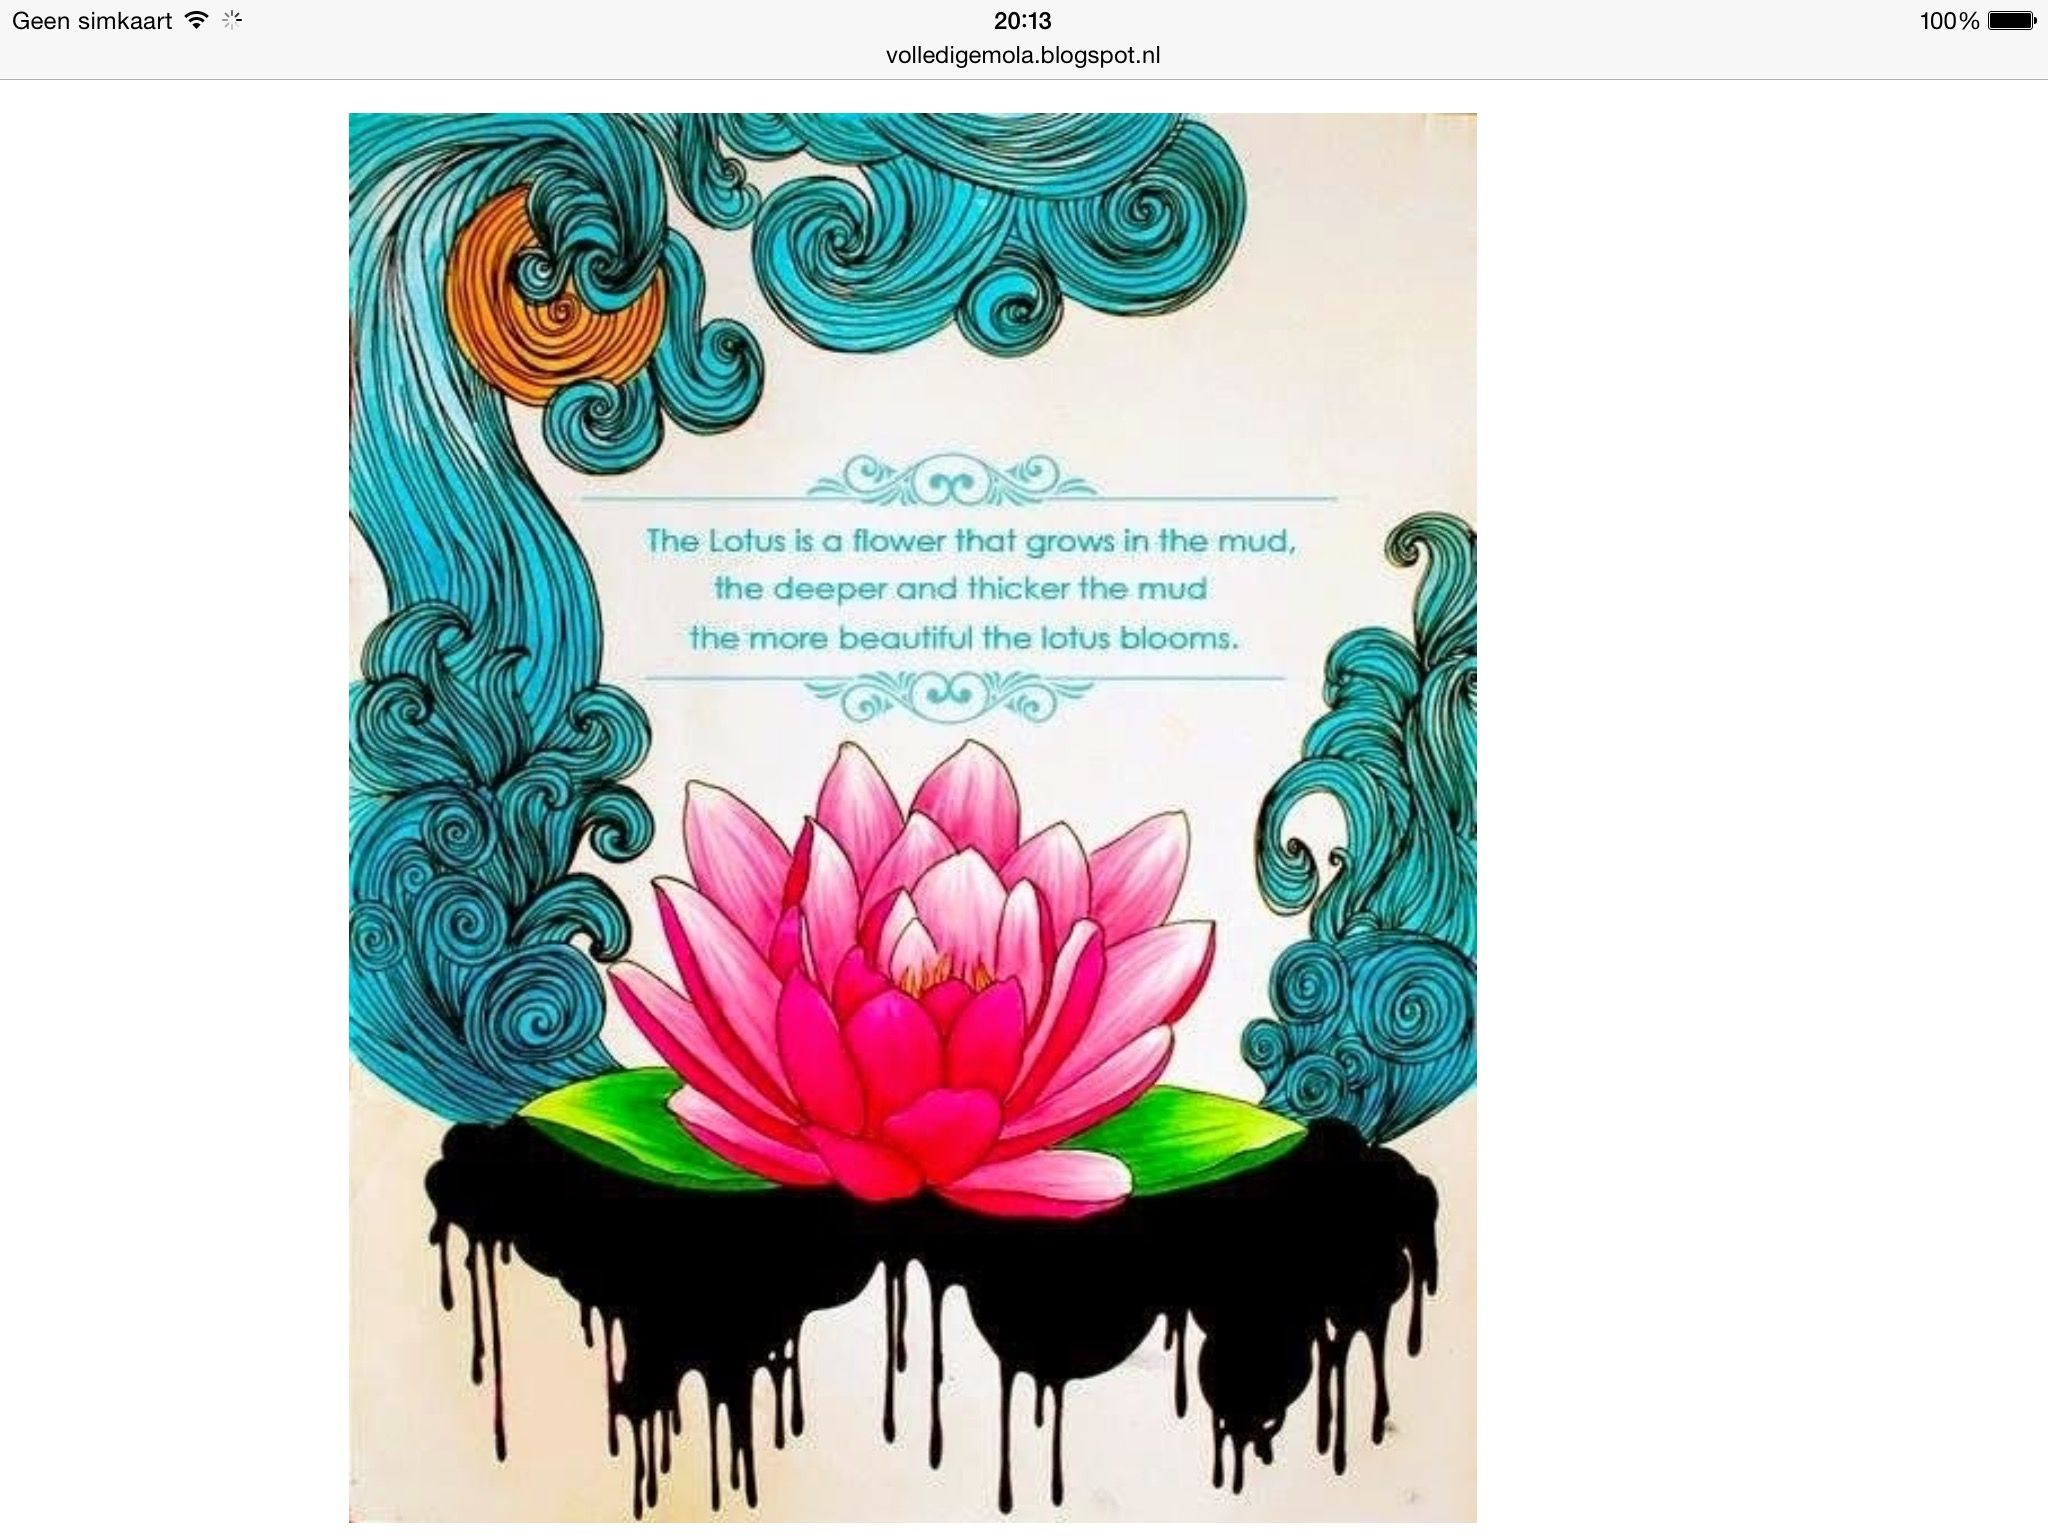 Pin by Shashank on Lotus quote in 2020 Lotus quote